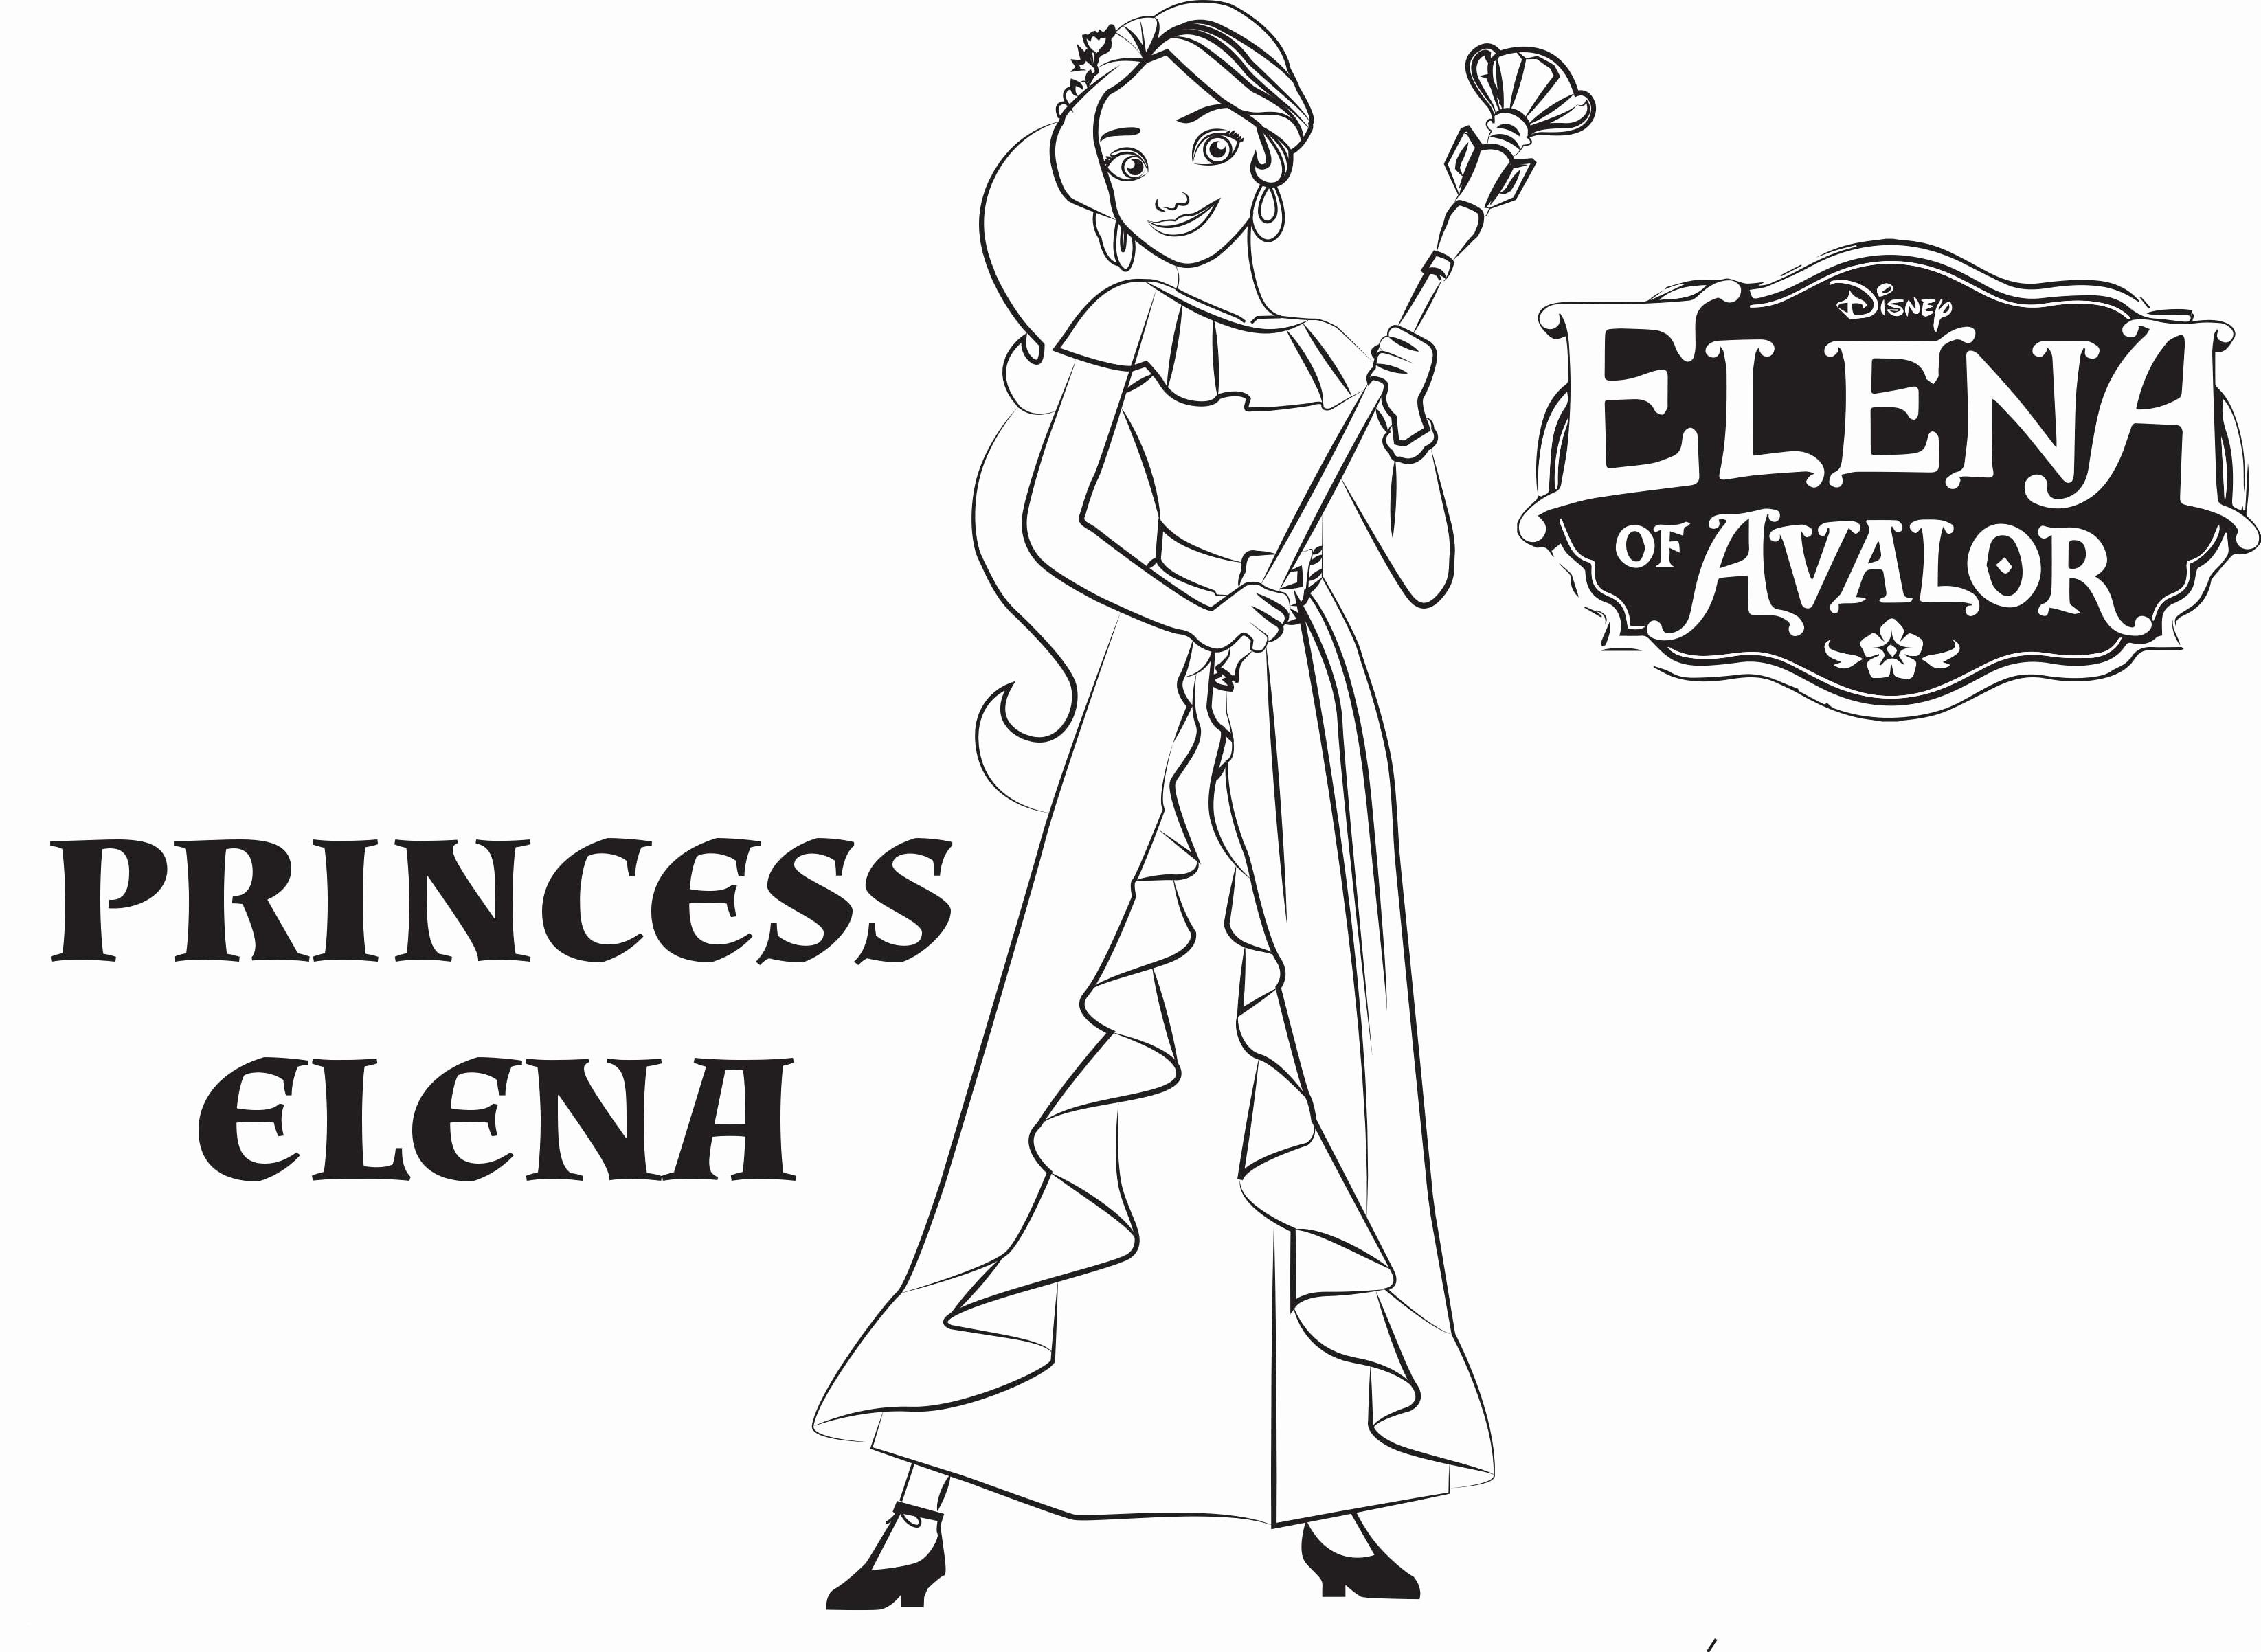 Disney Princess Elena Coloring Pages Through The Thousands Of Images Online About Disney Pr Disney Coloring Pages Princess Elena Coloring Pages Inspirational